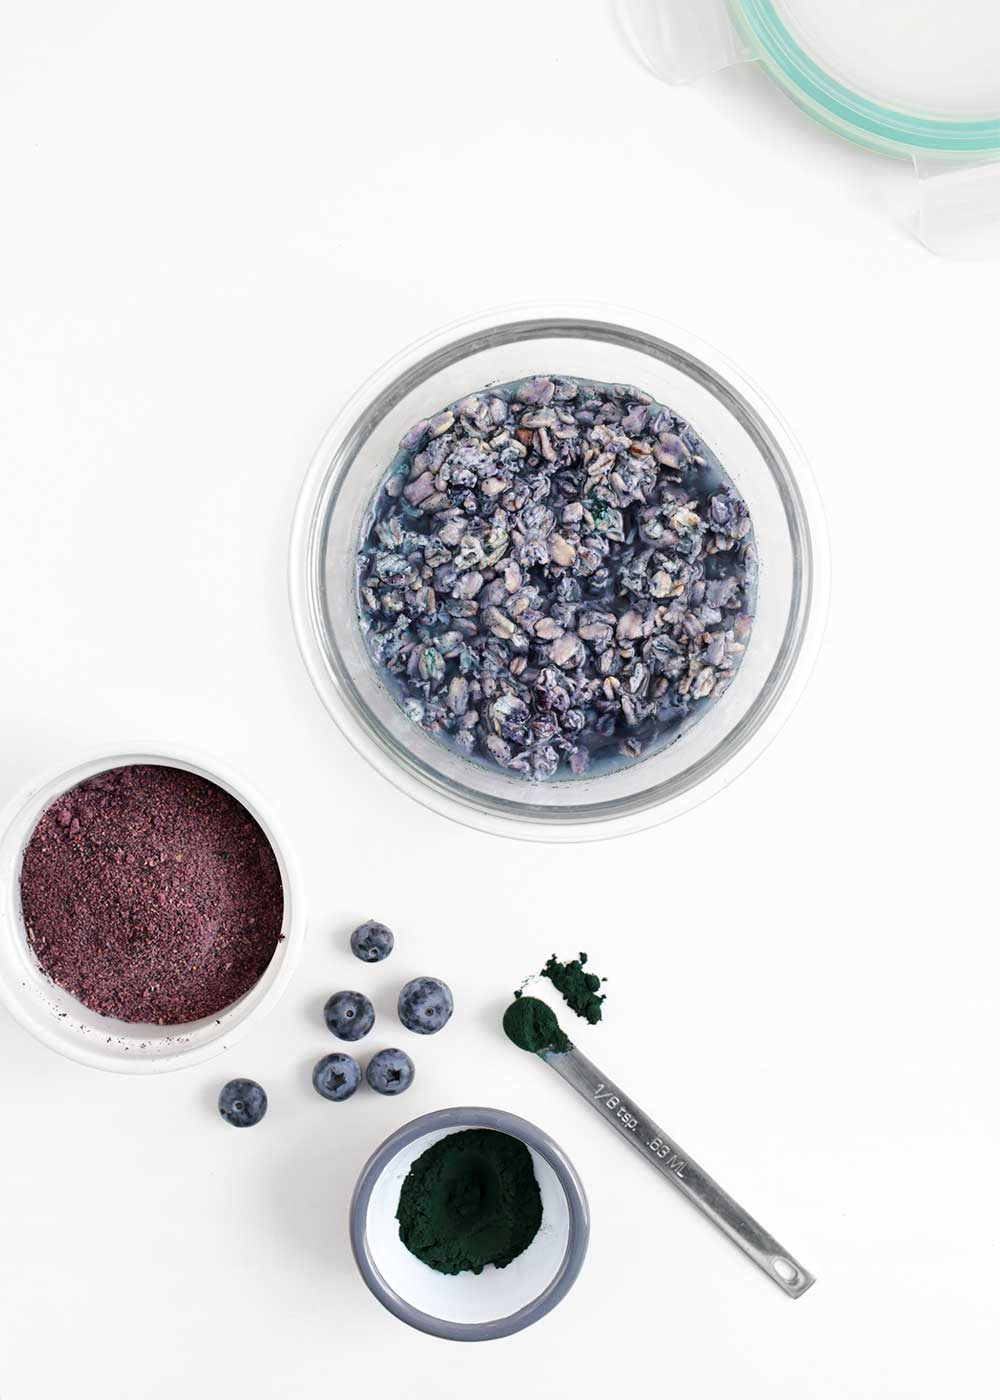 blueberry spirulina overnight oats from the faux martha